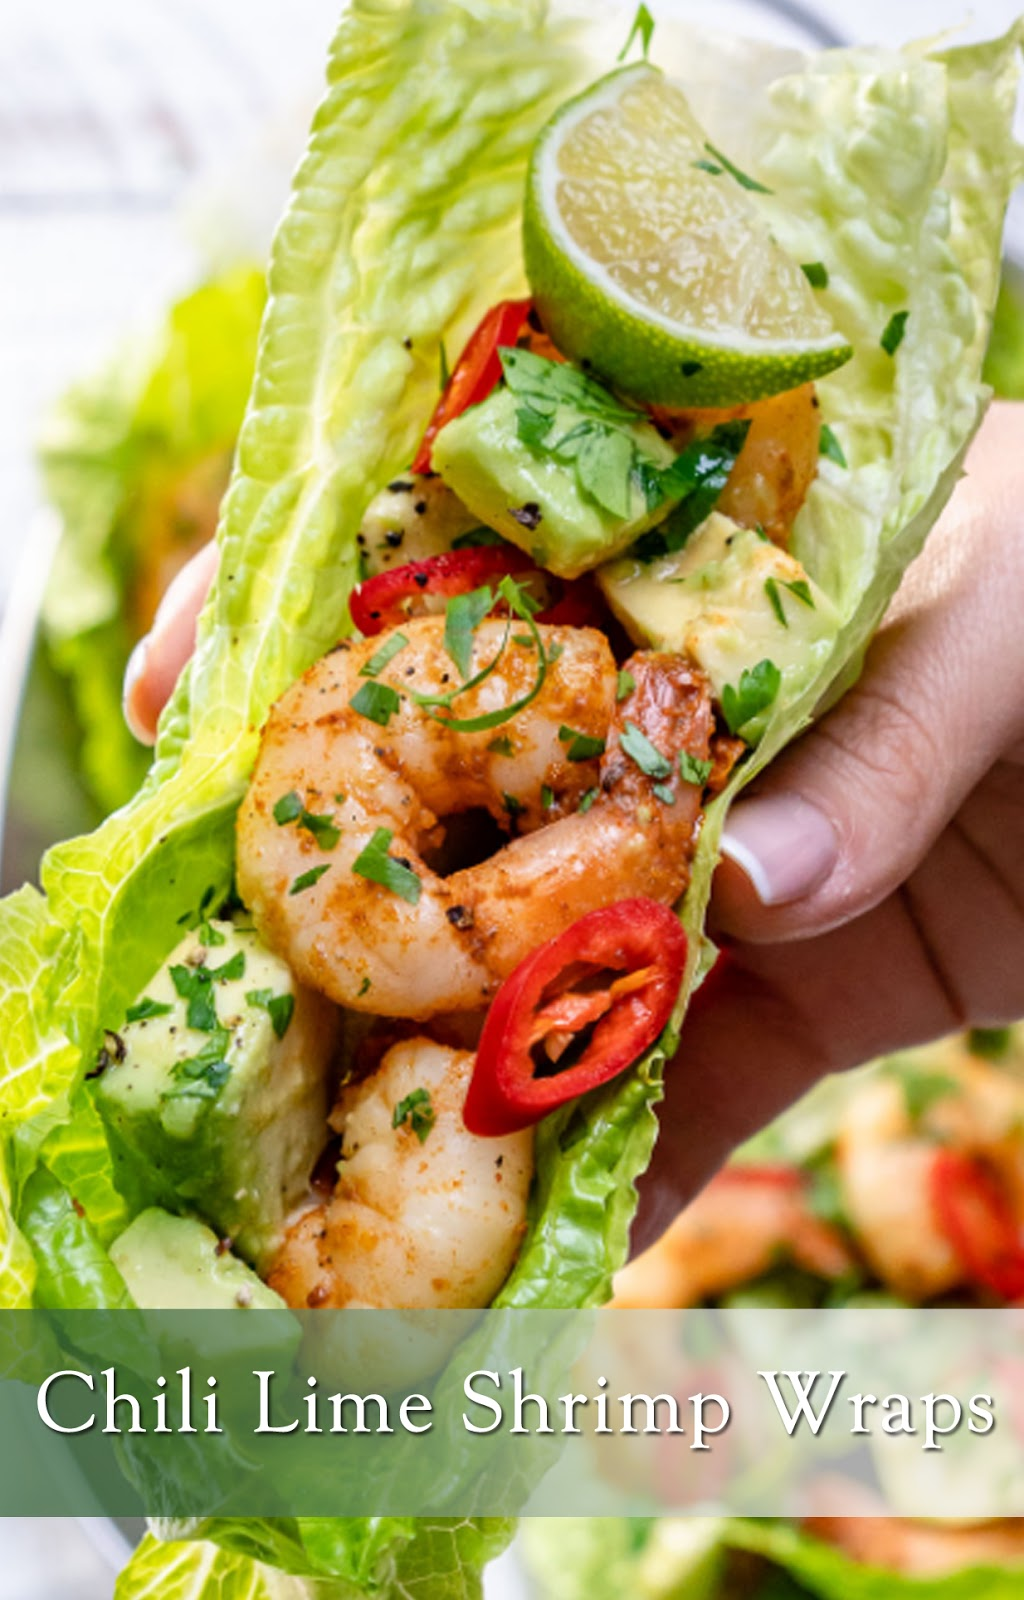 Chili Lime Shrimp Wraps